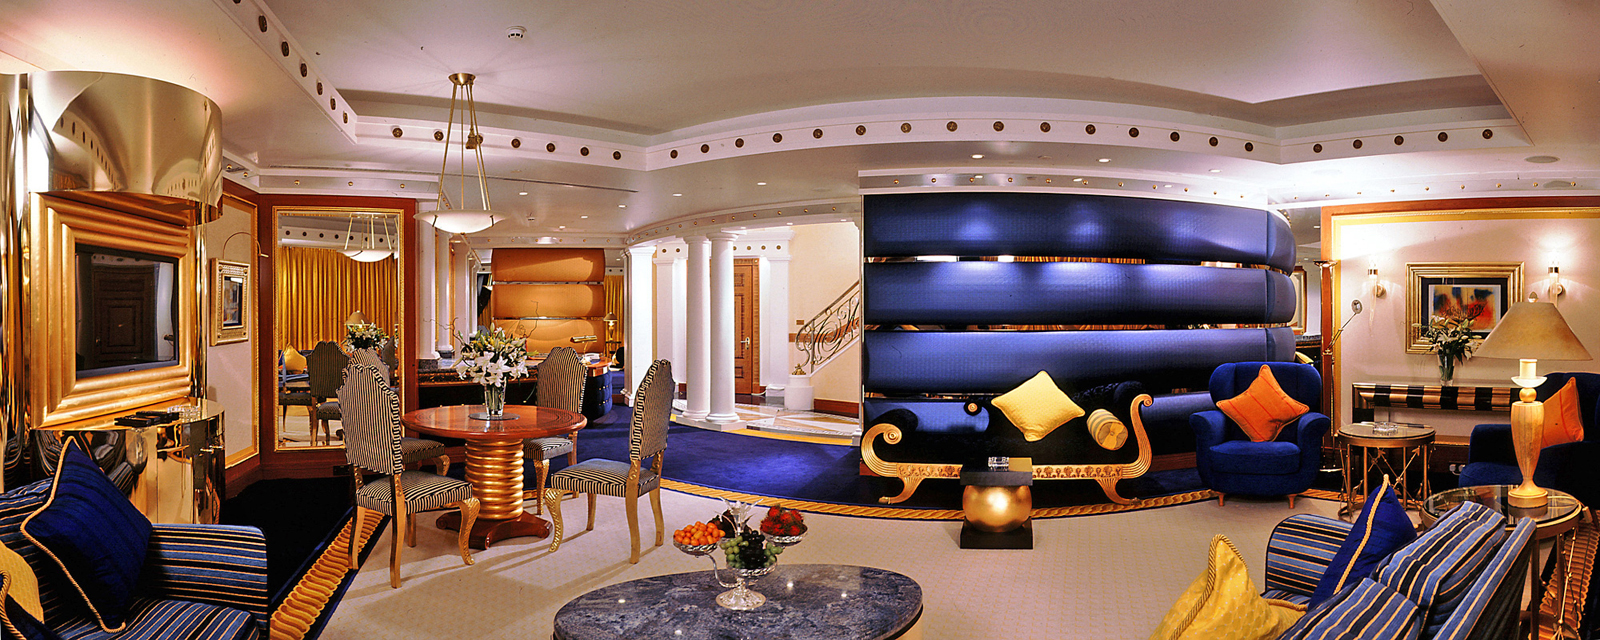 Plan your visit to downtown design dubai for Top five star hotels in dubai